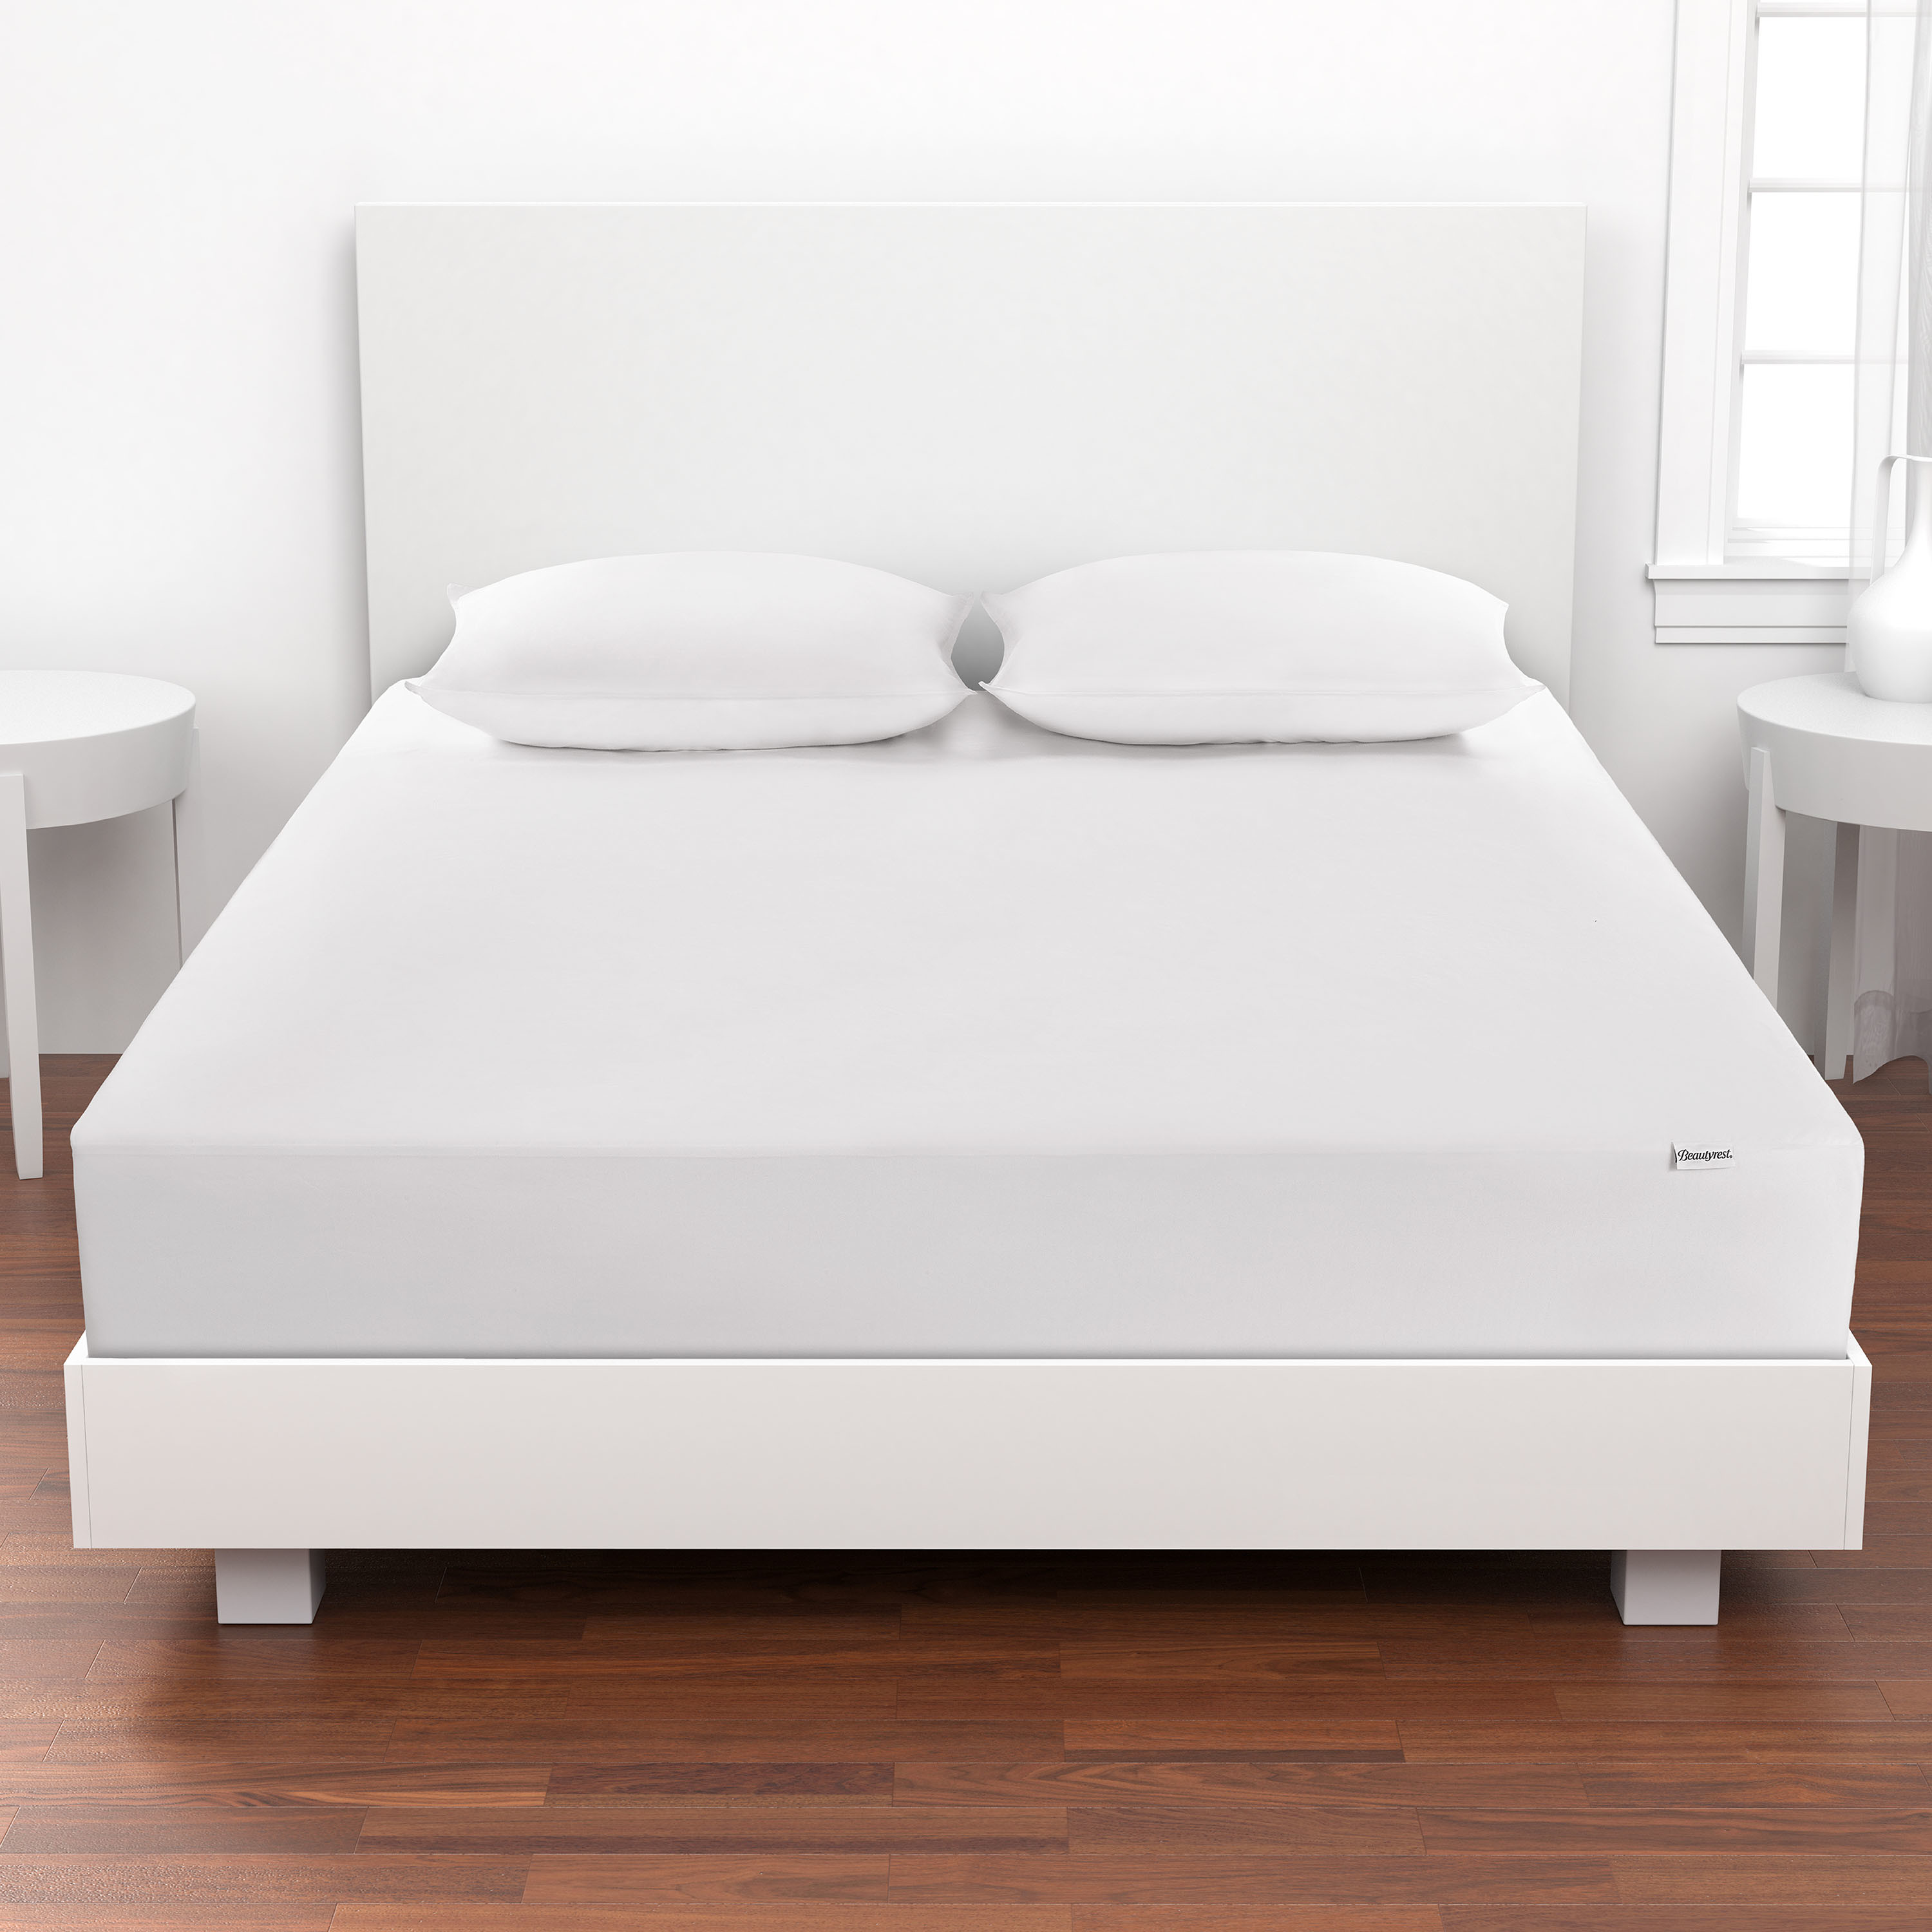 Beautyrest Silver Naturally Cool Mattress Protector in Multiple Sizes